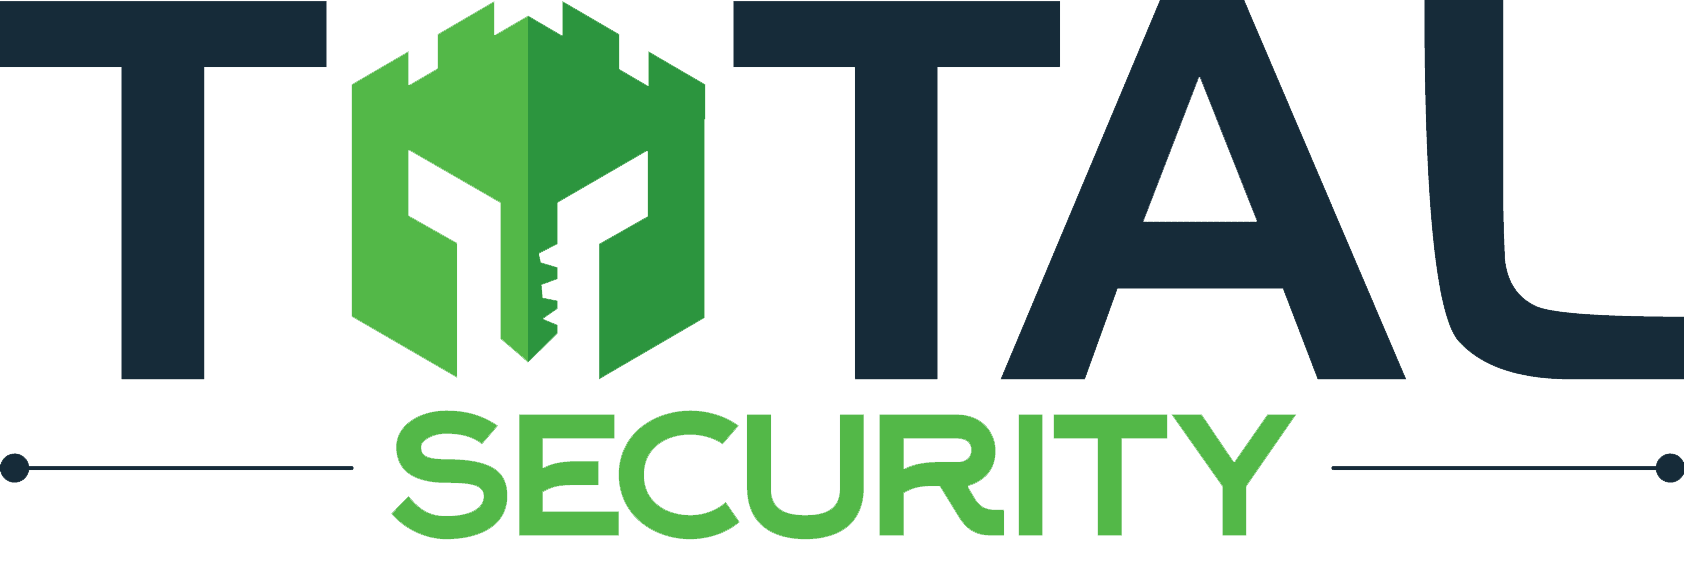 TOTAL SECURITY Logo CMYK 2-PNG